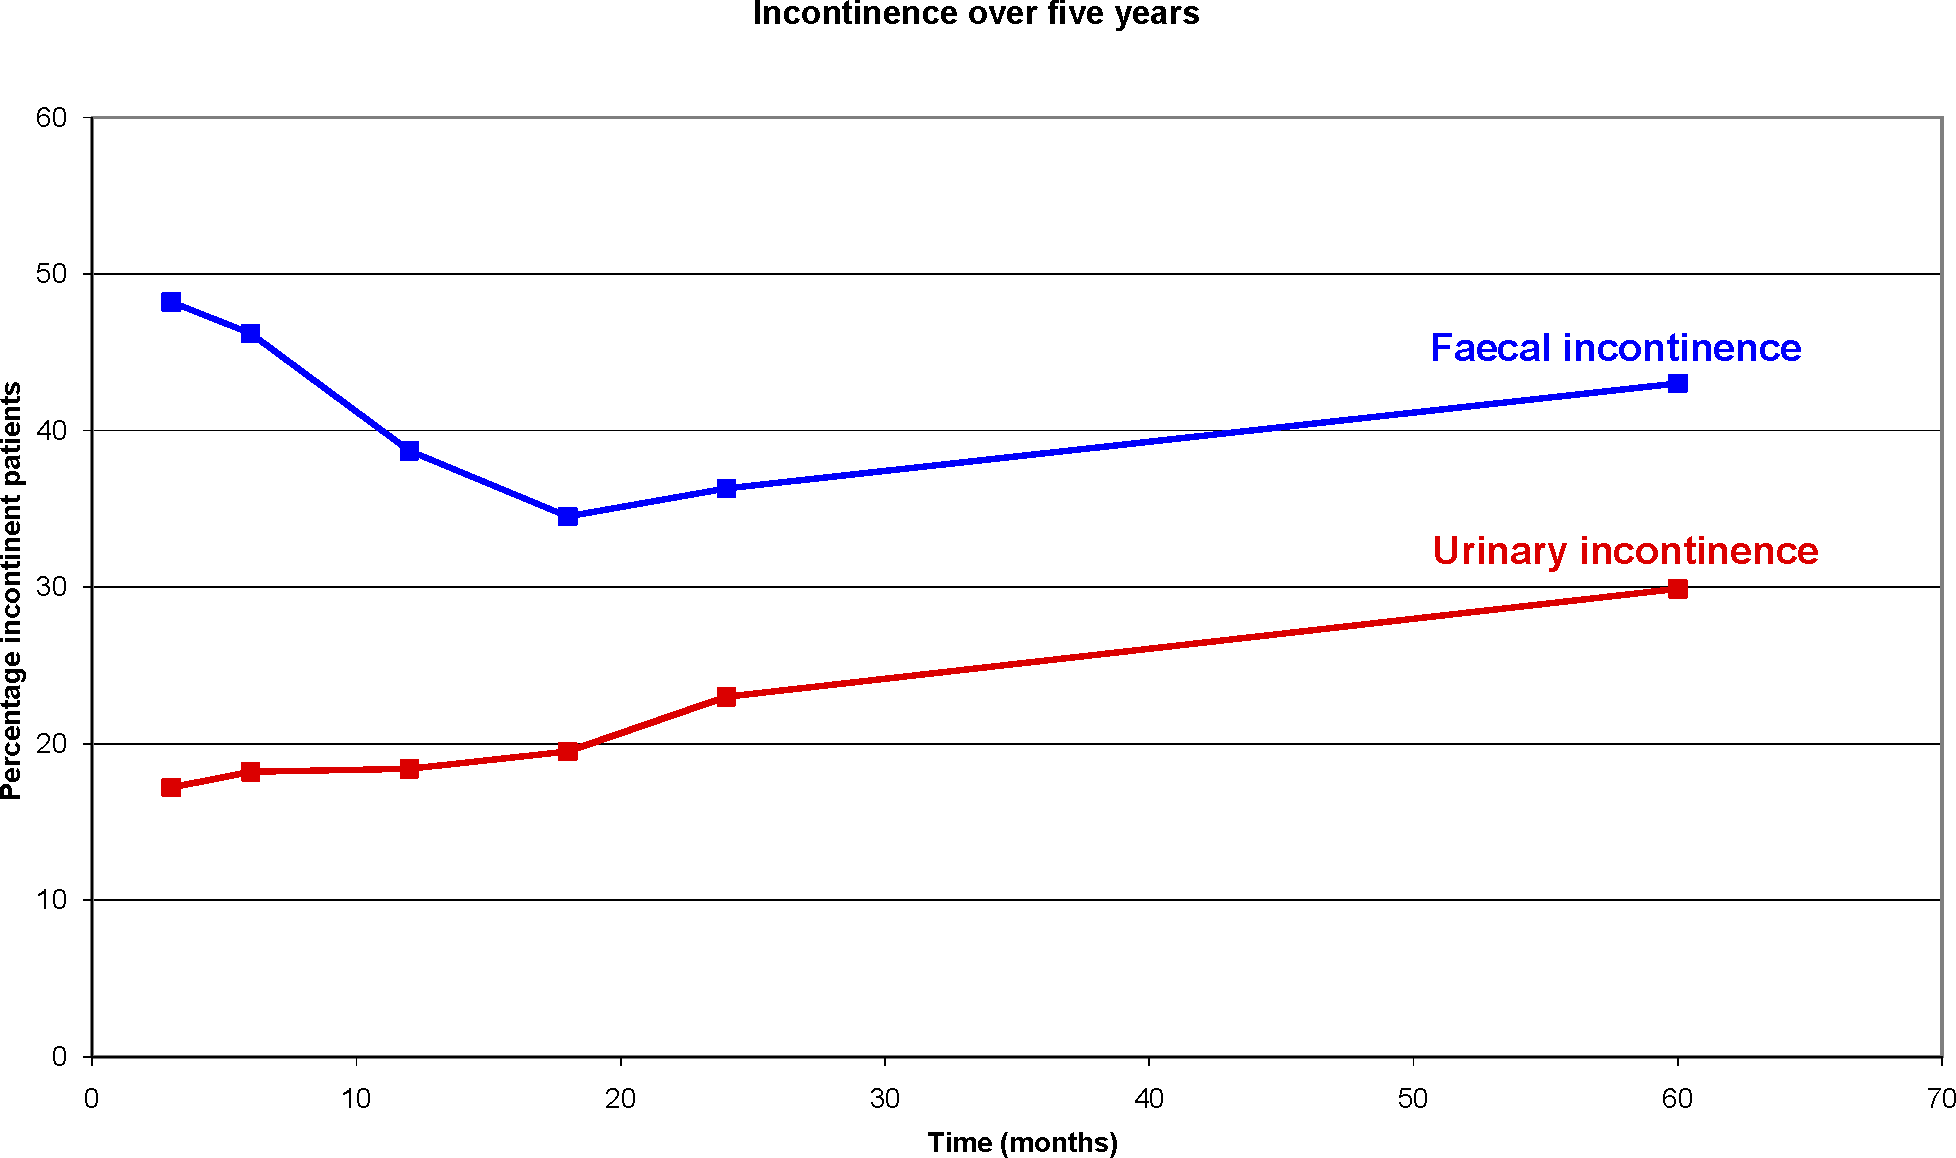 """Percentage of Faecal and Urinary Incontinence after Rectal Cancer Treatment Reported by Patients without Pre-Operative Faecal or Urinary Incontinence Who Participated in the Dutch TME Trial [<em class=""""ref"""">16</em>]"""